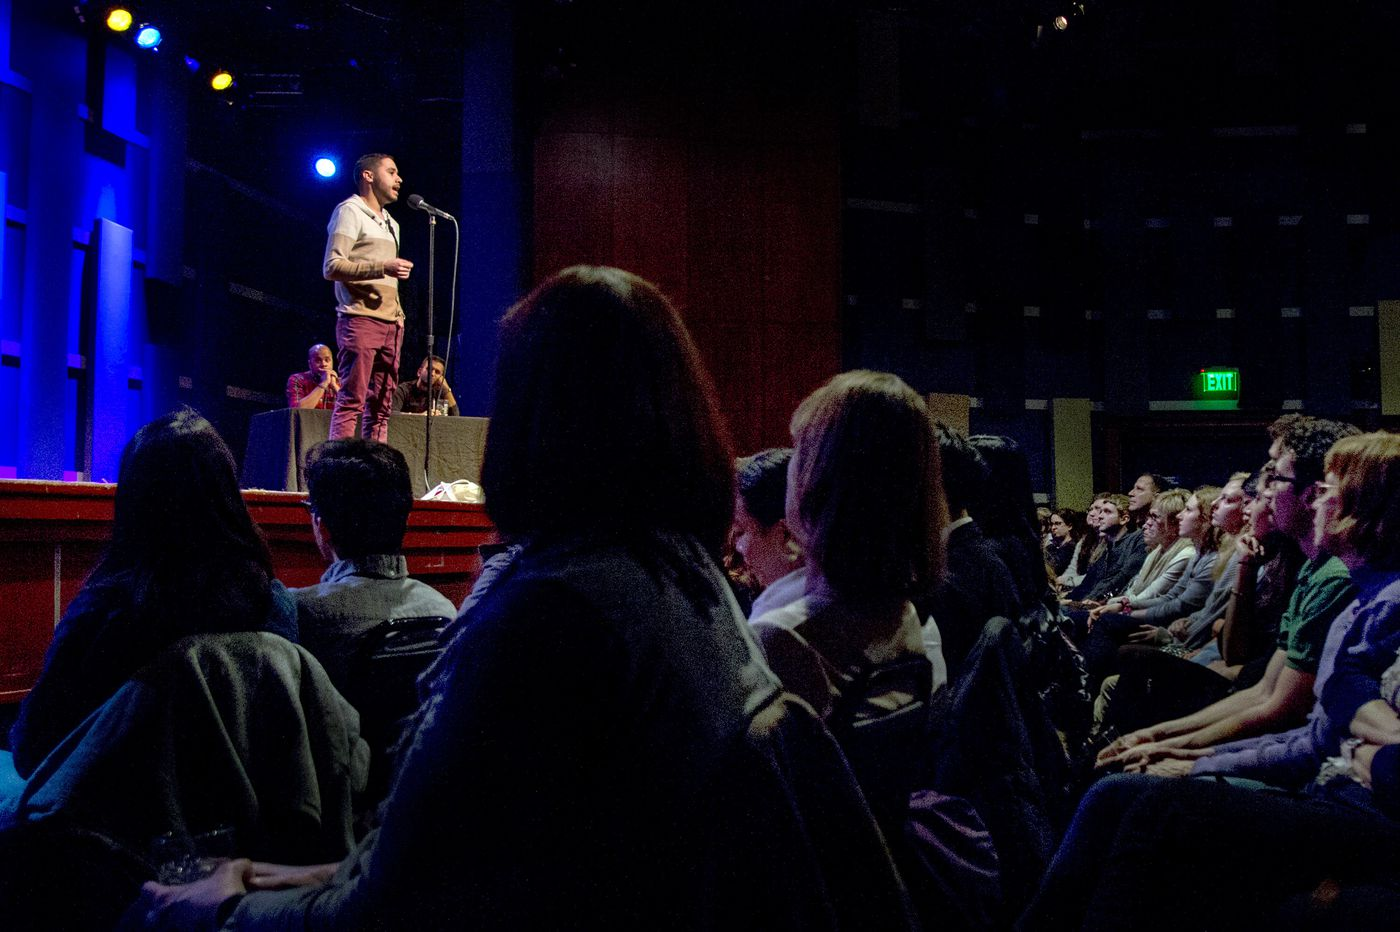 Listen up, Philly's storytellers have a lot to say